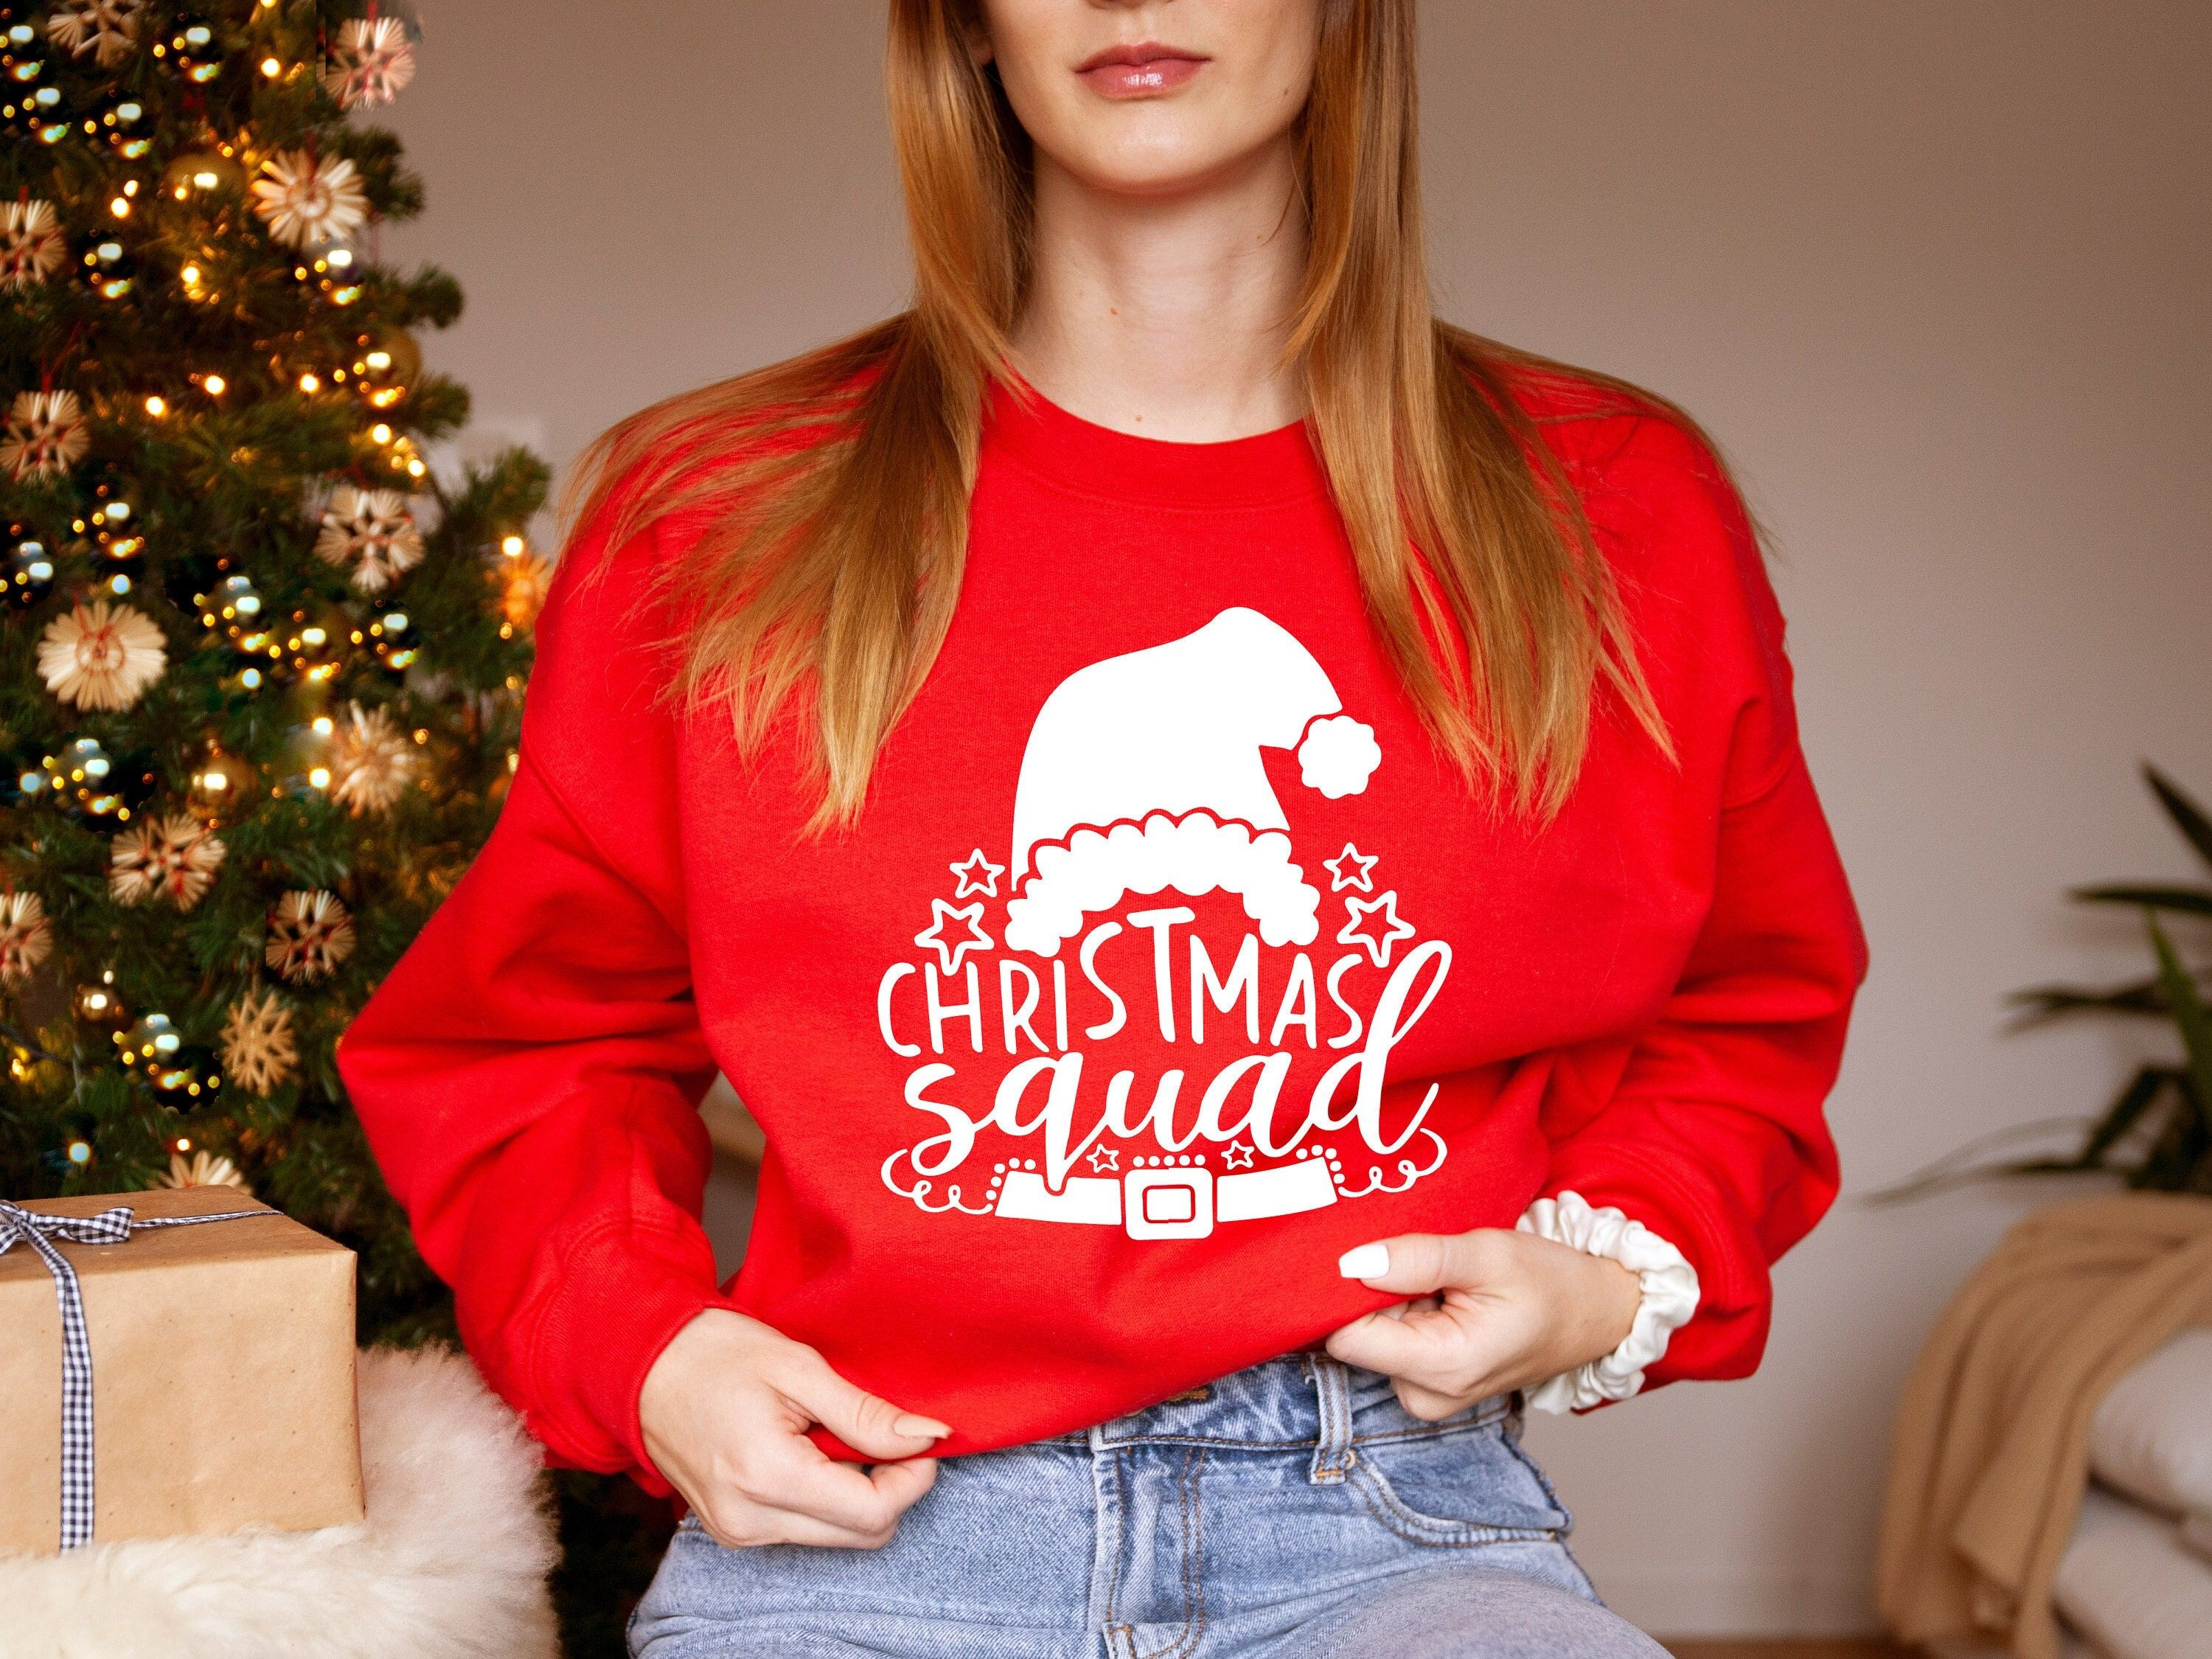 Christmas Squad Shirt, Christmas Family Squad Shirts, Christmas Family Shirts, Christmas T-shirt For Family, Custom Xmas Shirt, Xmas Gift ✔ By gifting it, you can create an unforgettable memory. ✔ This tshirt will make you feel happy and comfortable. ✔ We prepare our products with love and care We are here to provide you perfect designs, high levels of quality and affordable products. We are dedicated to giving you the best customer satisfaction in LEVELUPTEES. HOW TO ORDER: 1-Please check all o